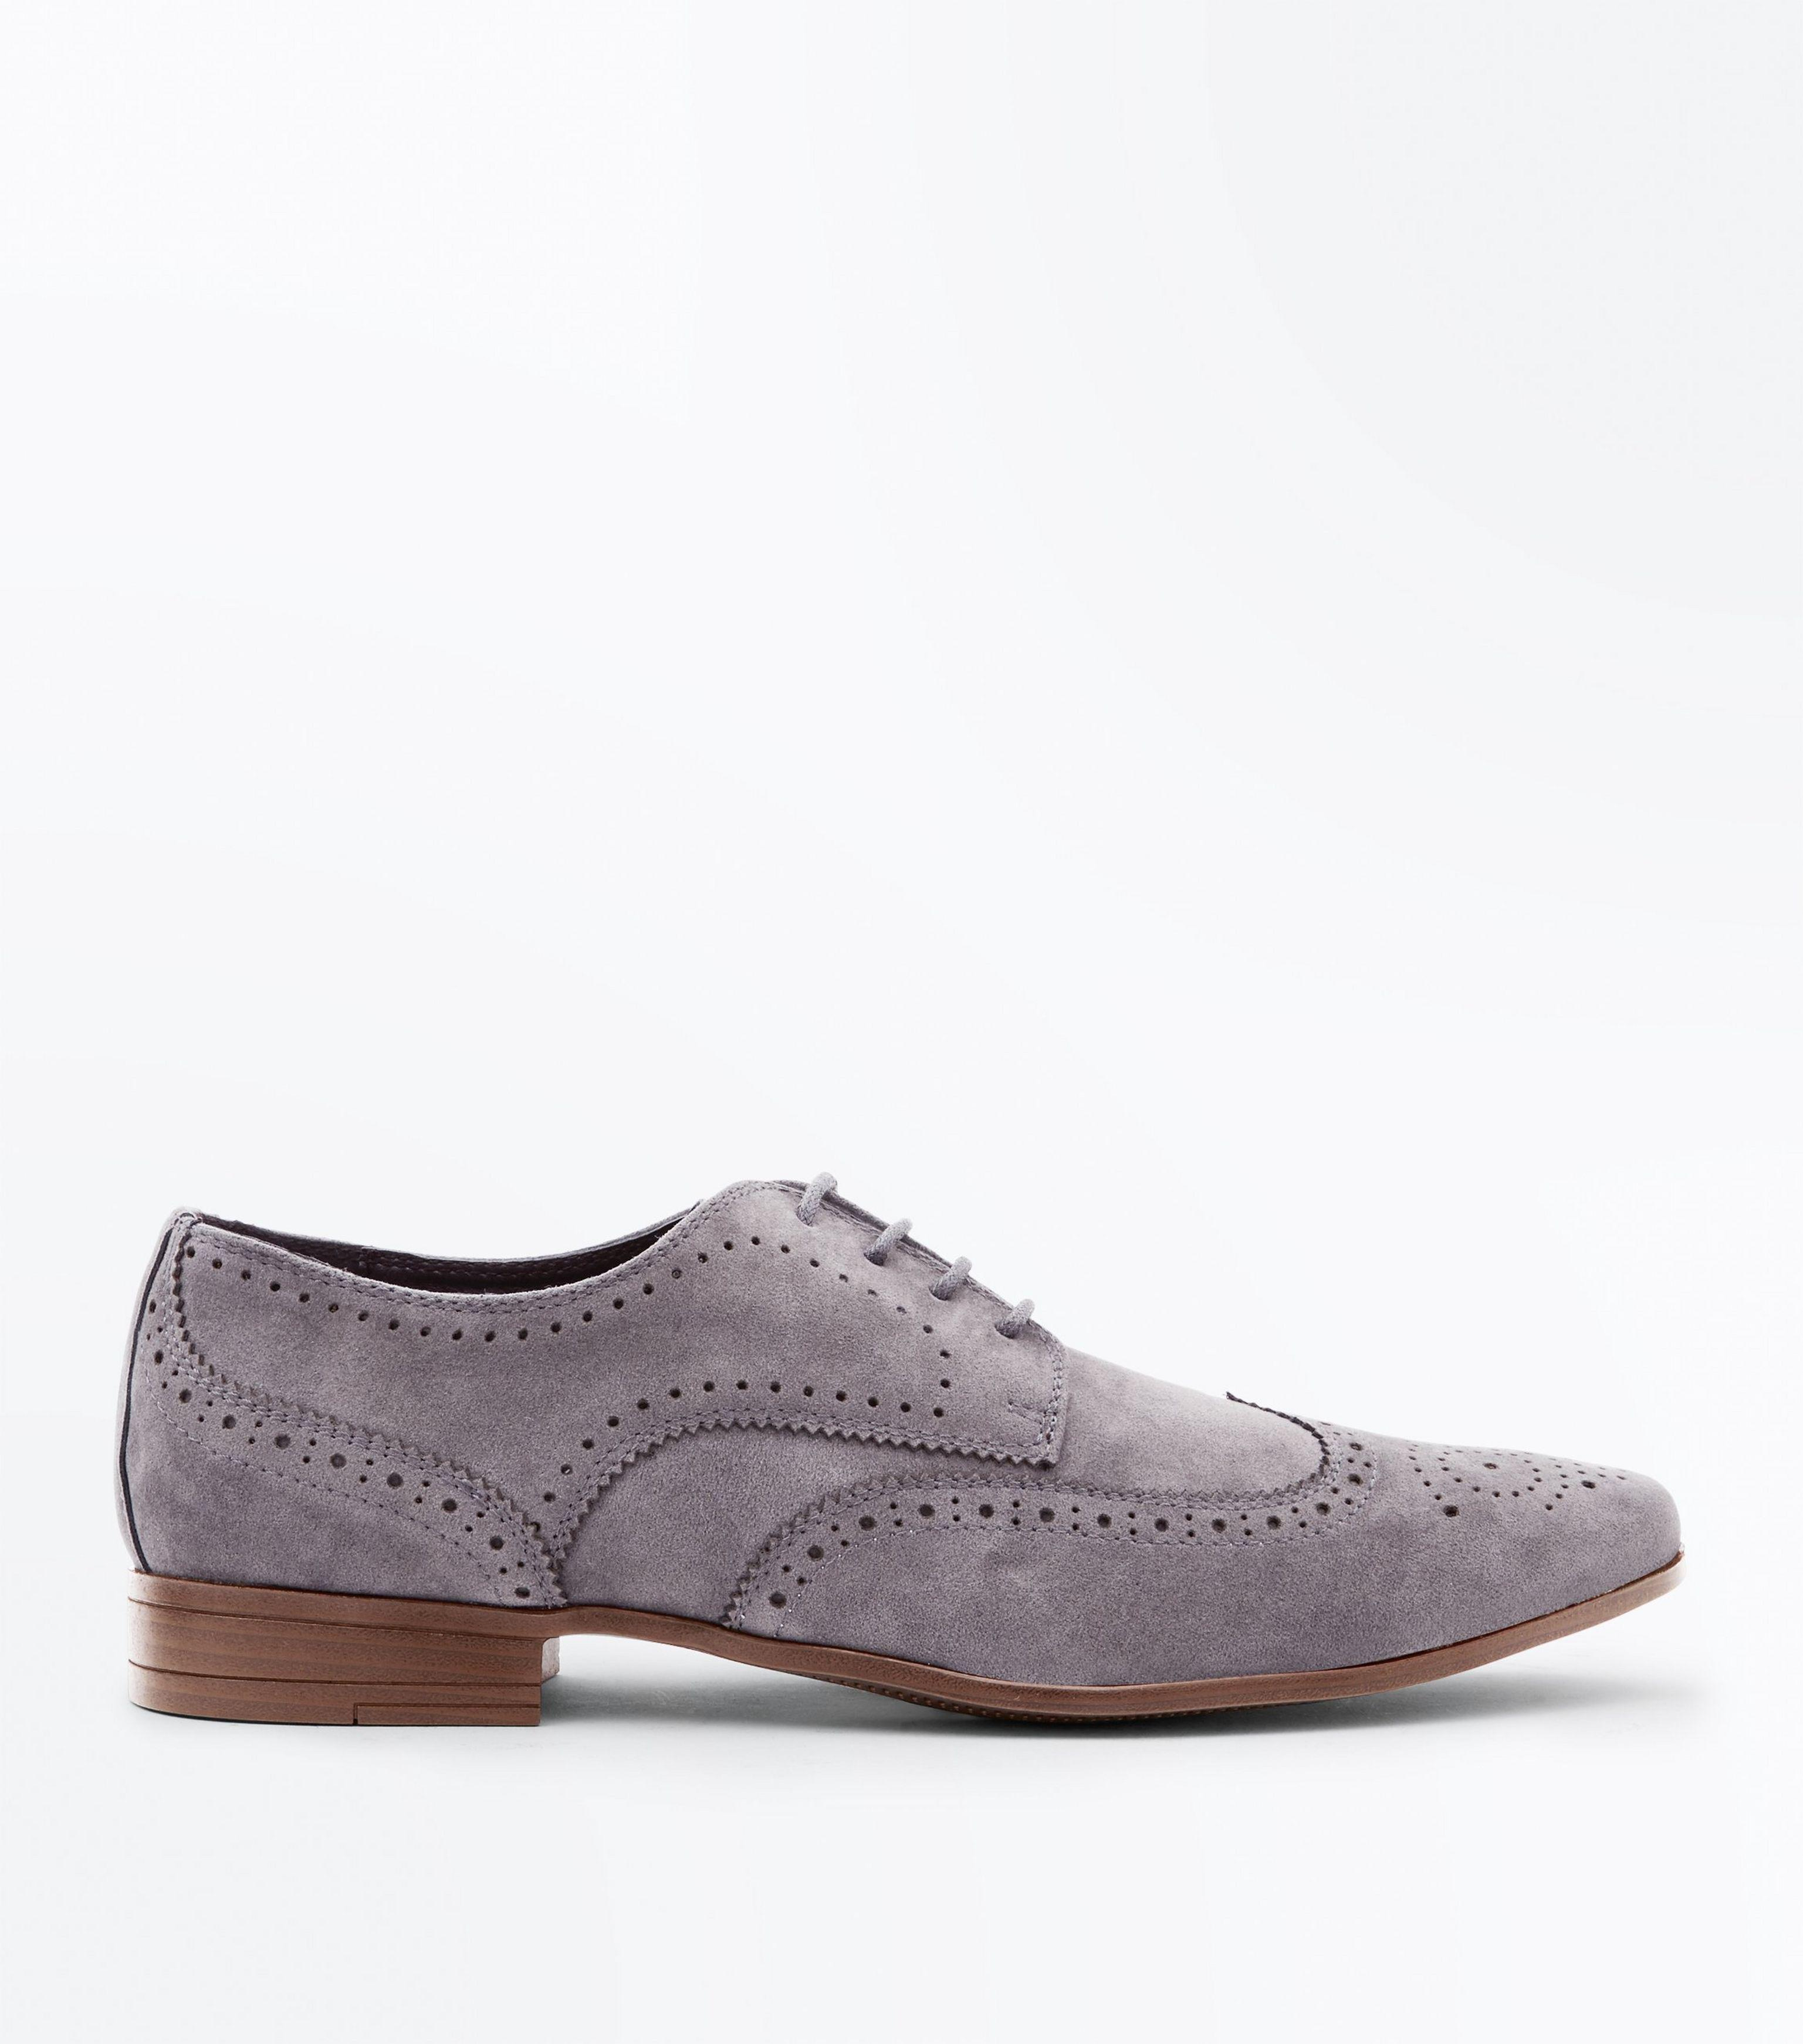 New Look faux suede brogue in grey discount professional purchase for sale xuzdYJoz